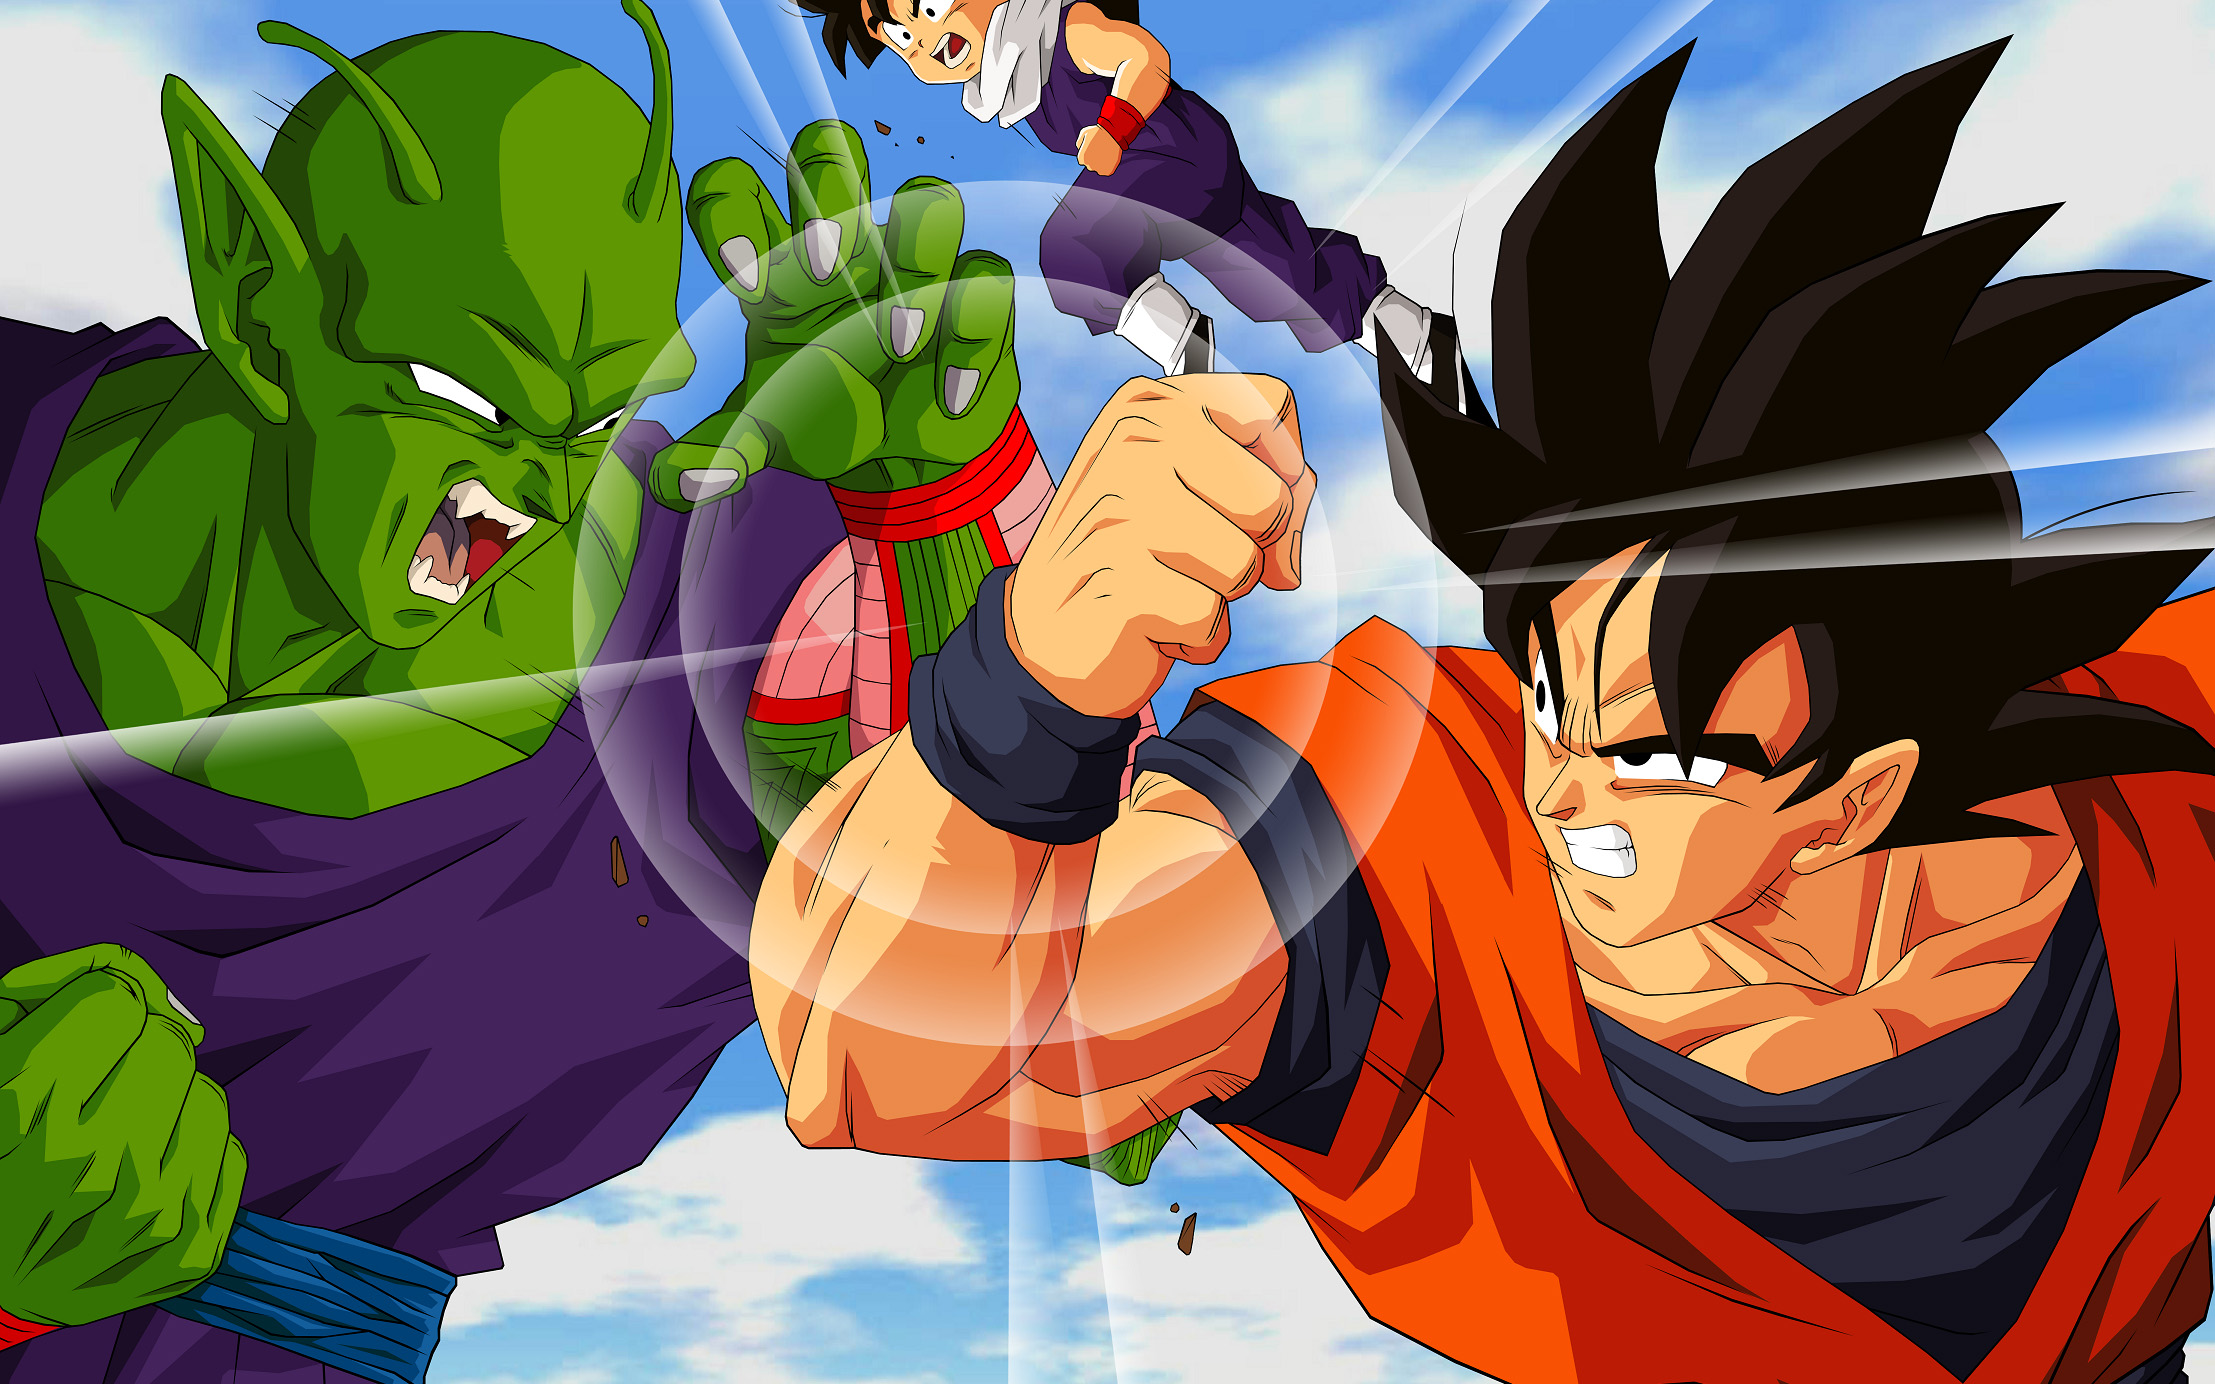 Dragon ball z images goku v s piccolo hd wallpaper and for Portefeuille dragon ball z